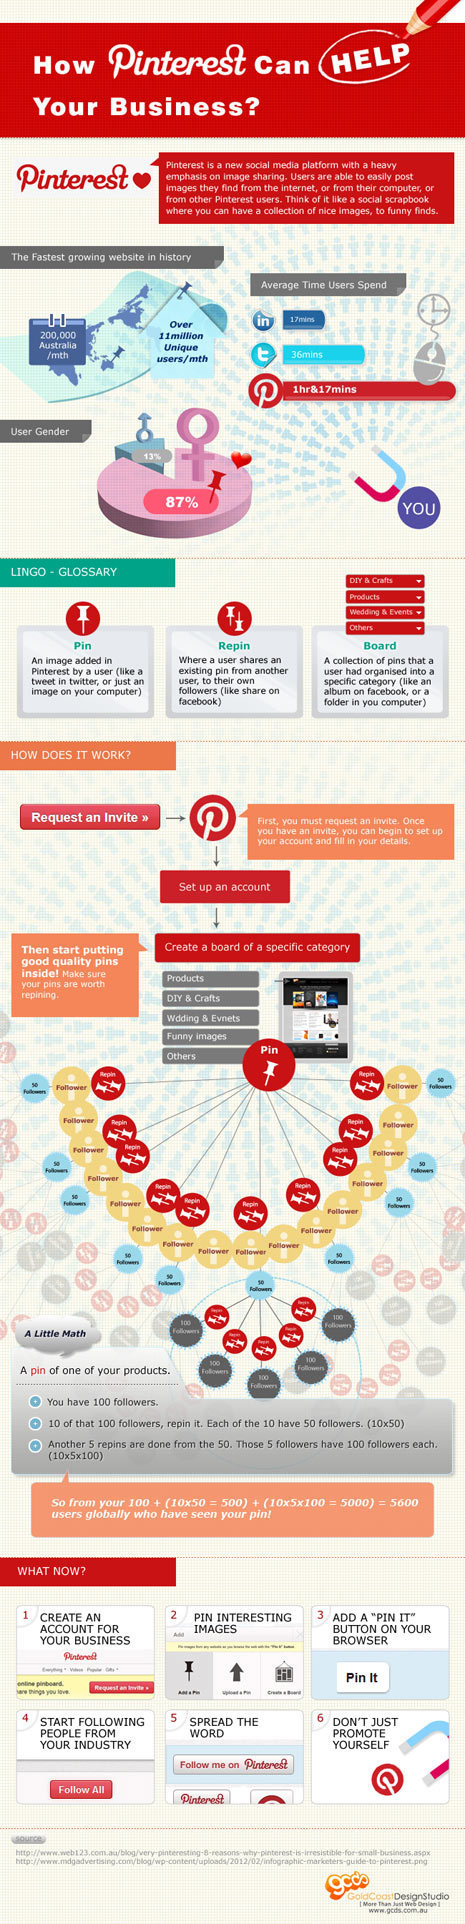 10 cosas que debes saber sobre Pinterest | THE SOCIAL MEDIA FAMILY | Personas 2.0: #SocialMedia #Strategist | Scoop.it